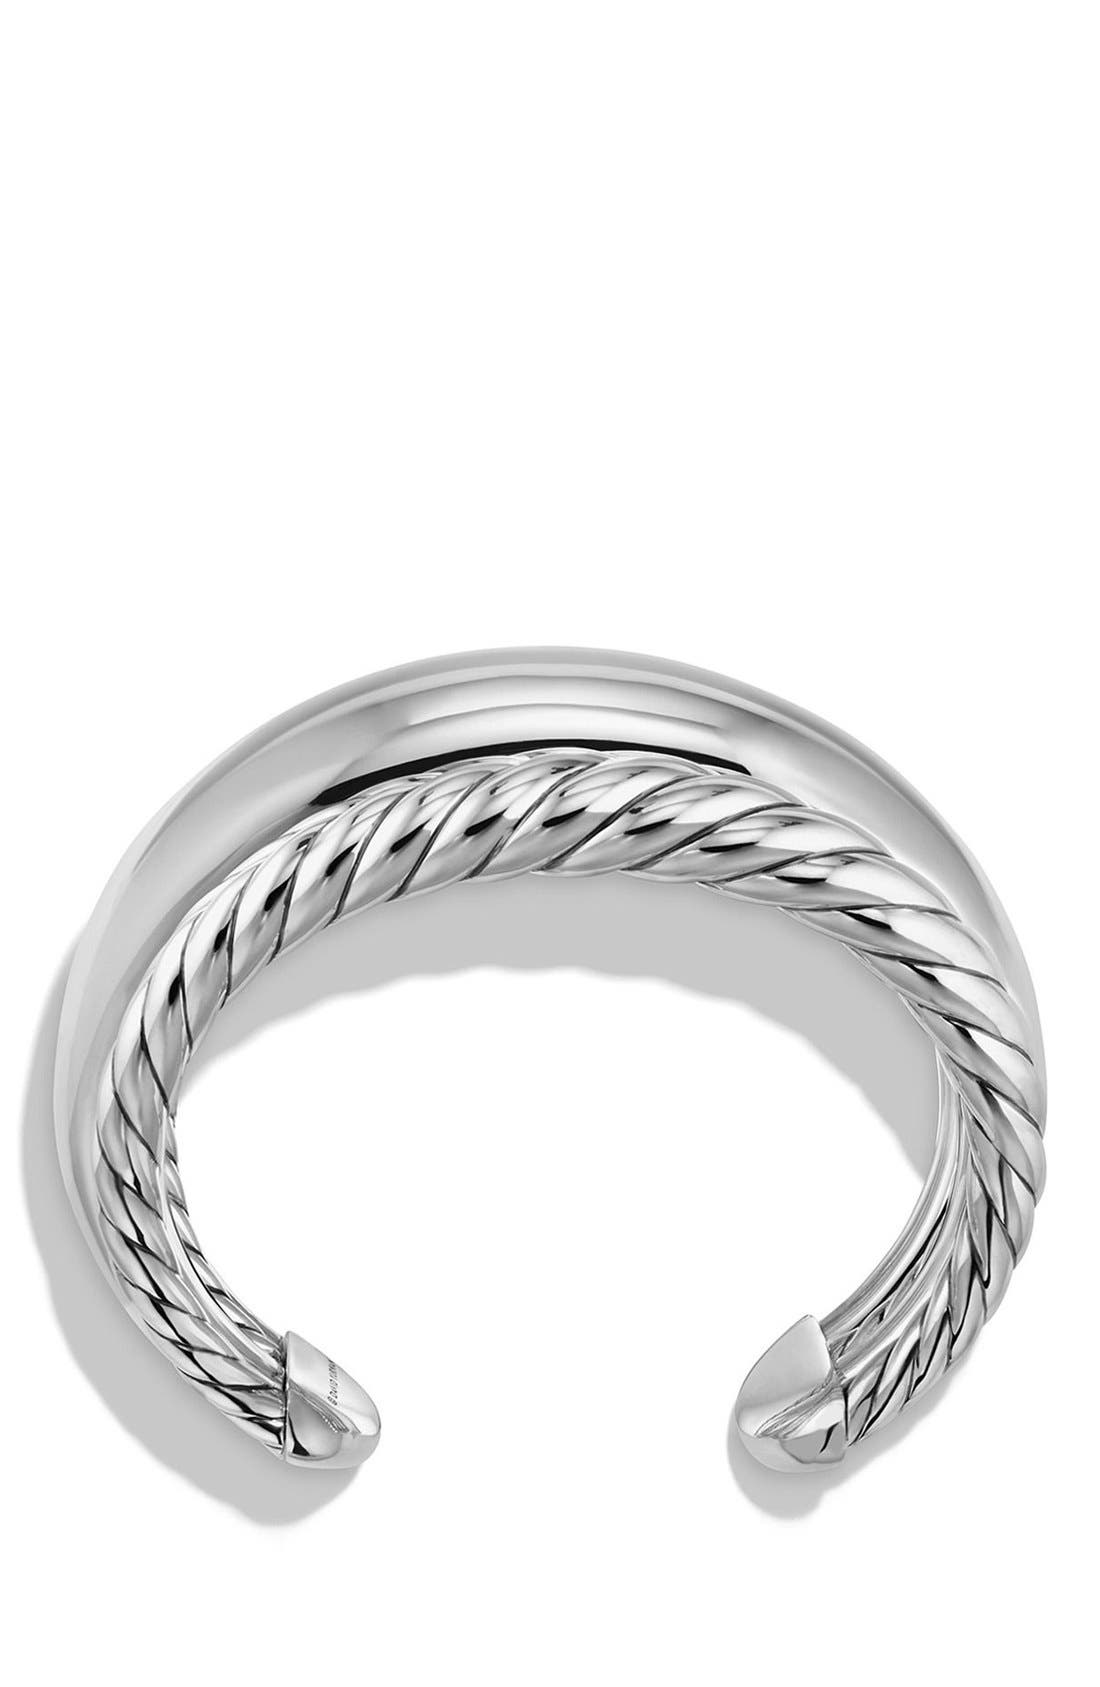 'Pure Form' Four-Row Sterling Silver Cuff,                             Alternate thumbnail 2, color,                             Silver